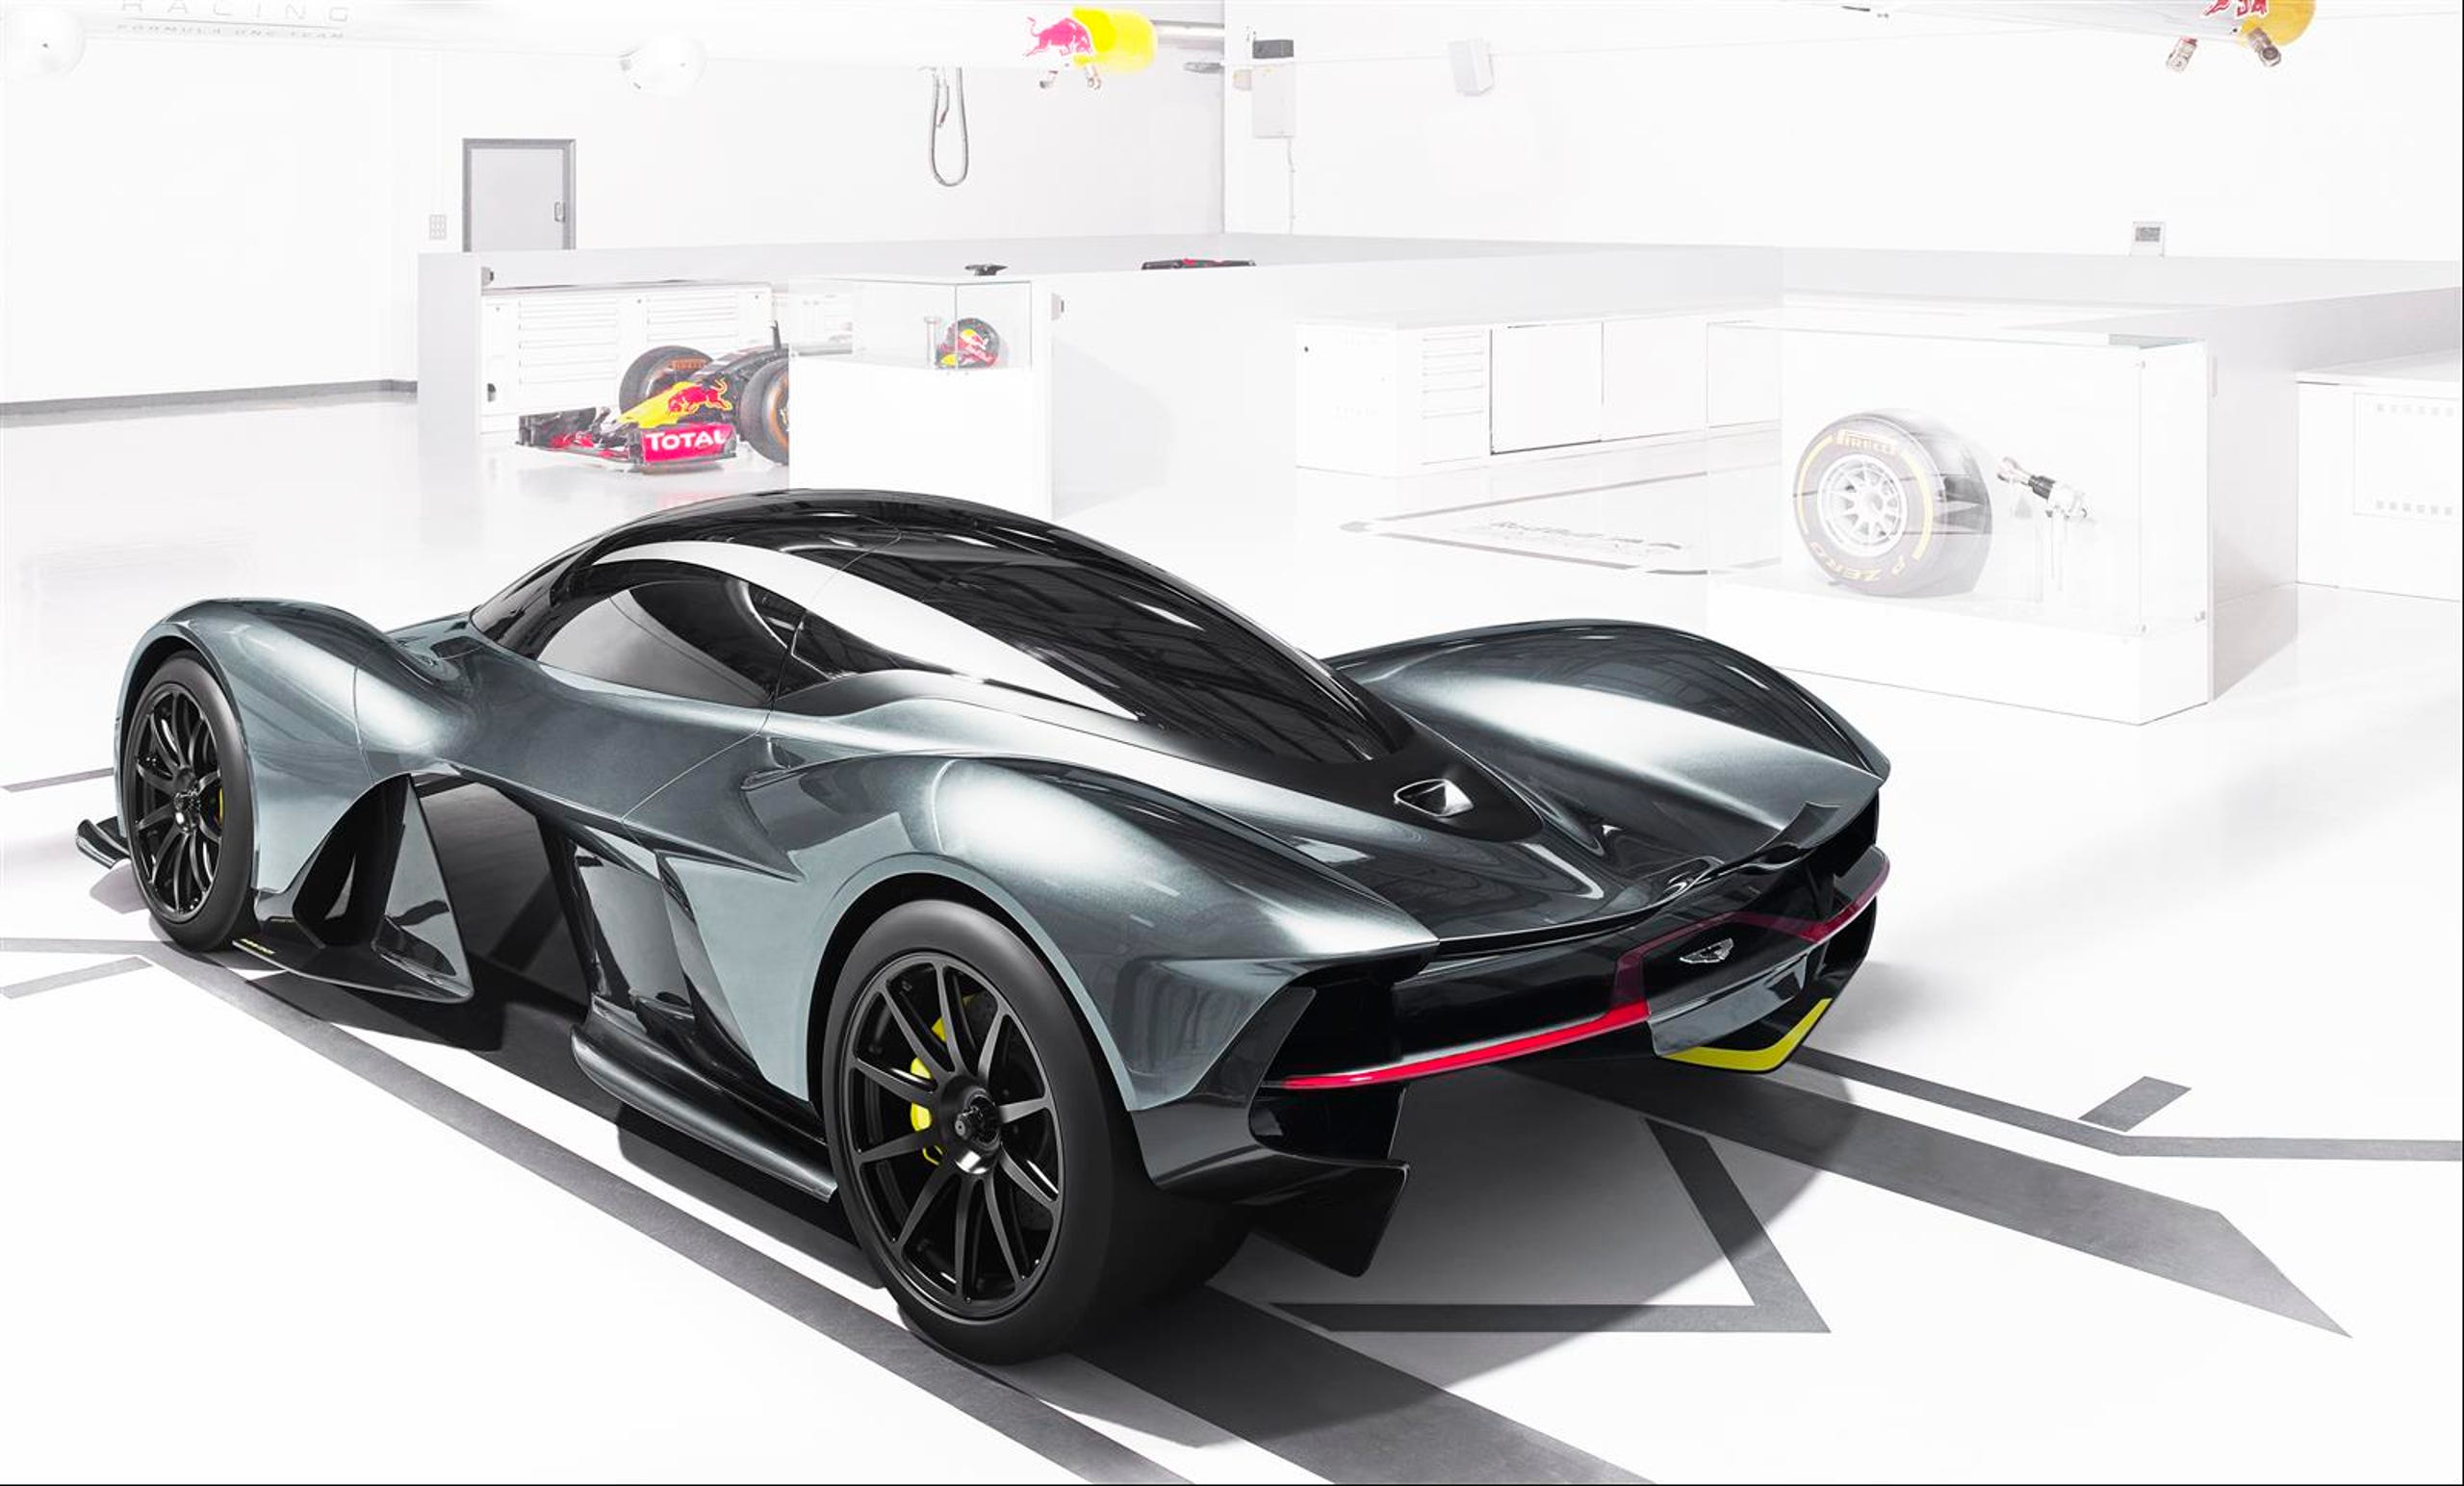 Aston Martin Has Teamed Up With Red Bull Racing To Develop The Am Rb 001